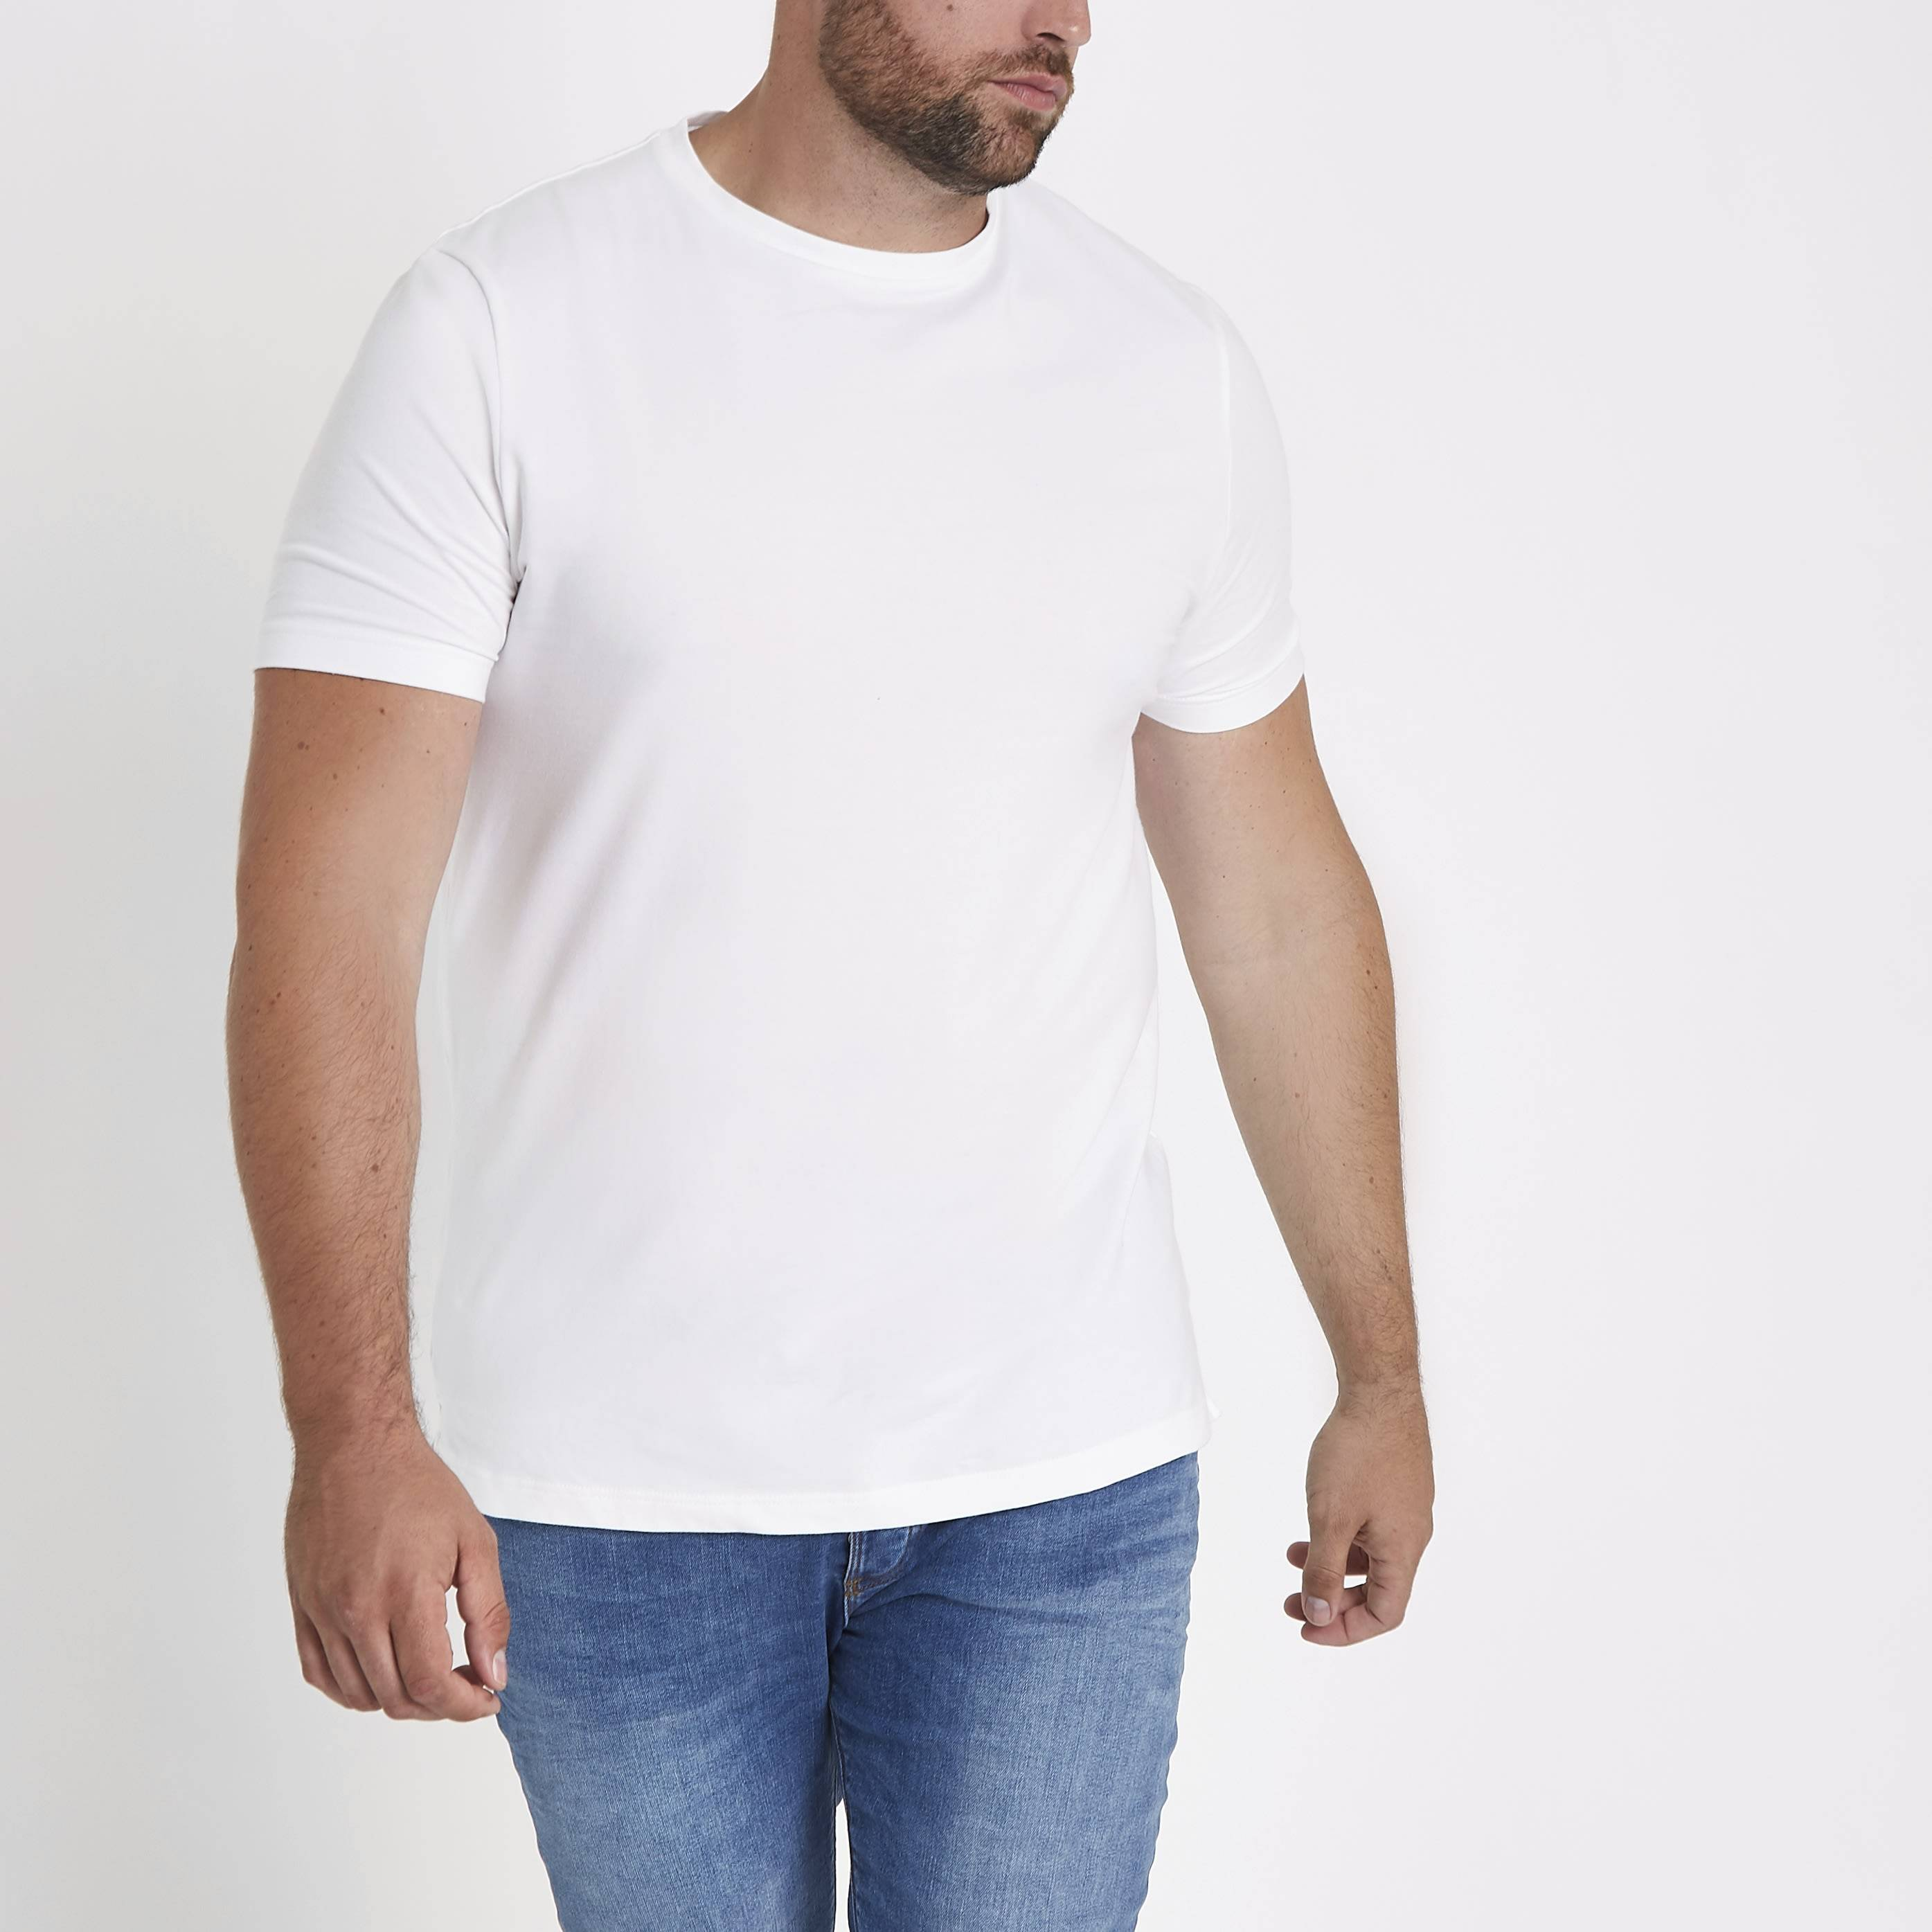 River Island Mens Big and Tall White muscle fit T-shirt (XL)